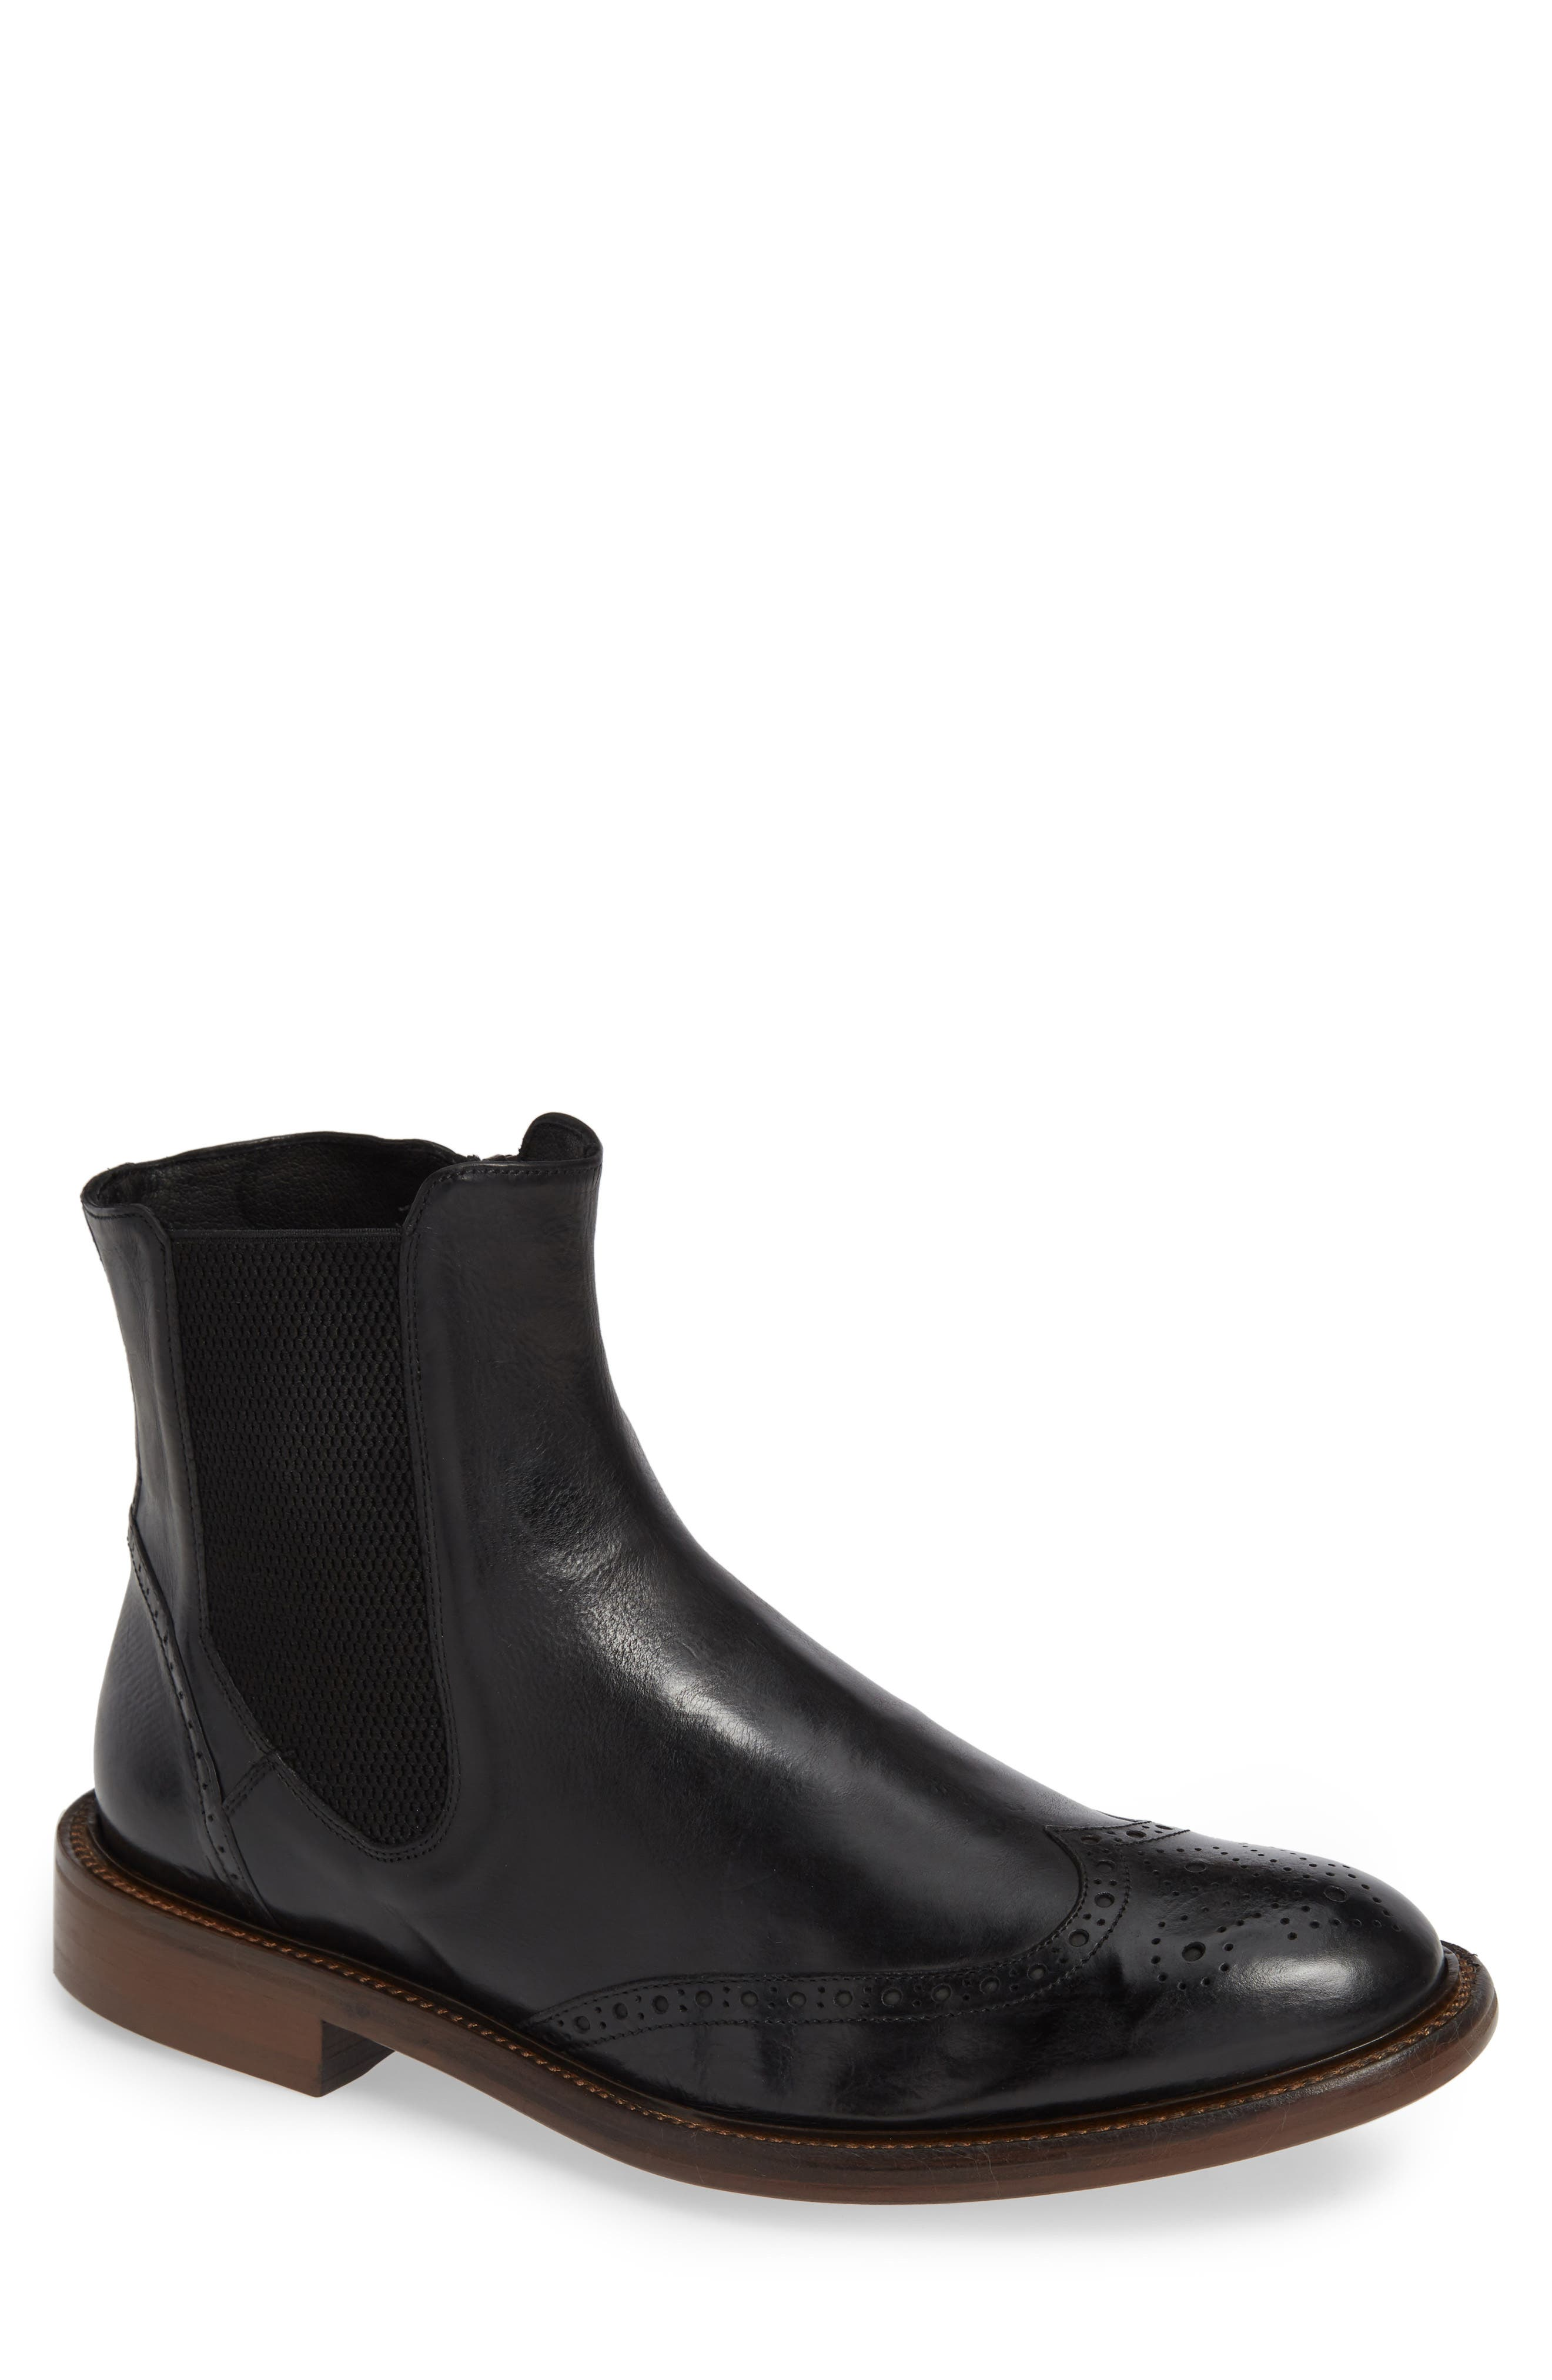 Bryson Wingtip Chelsea Boot,                         Main,                         color, BLACK LEATHER